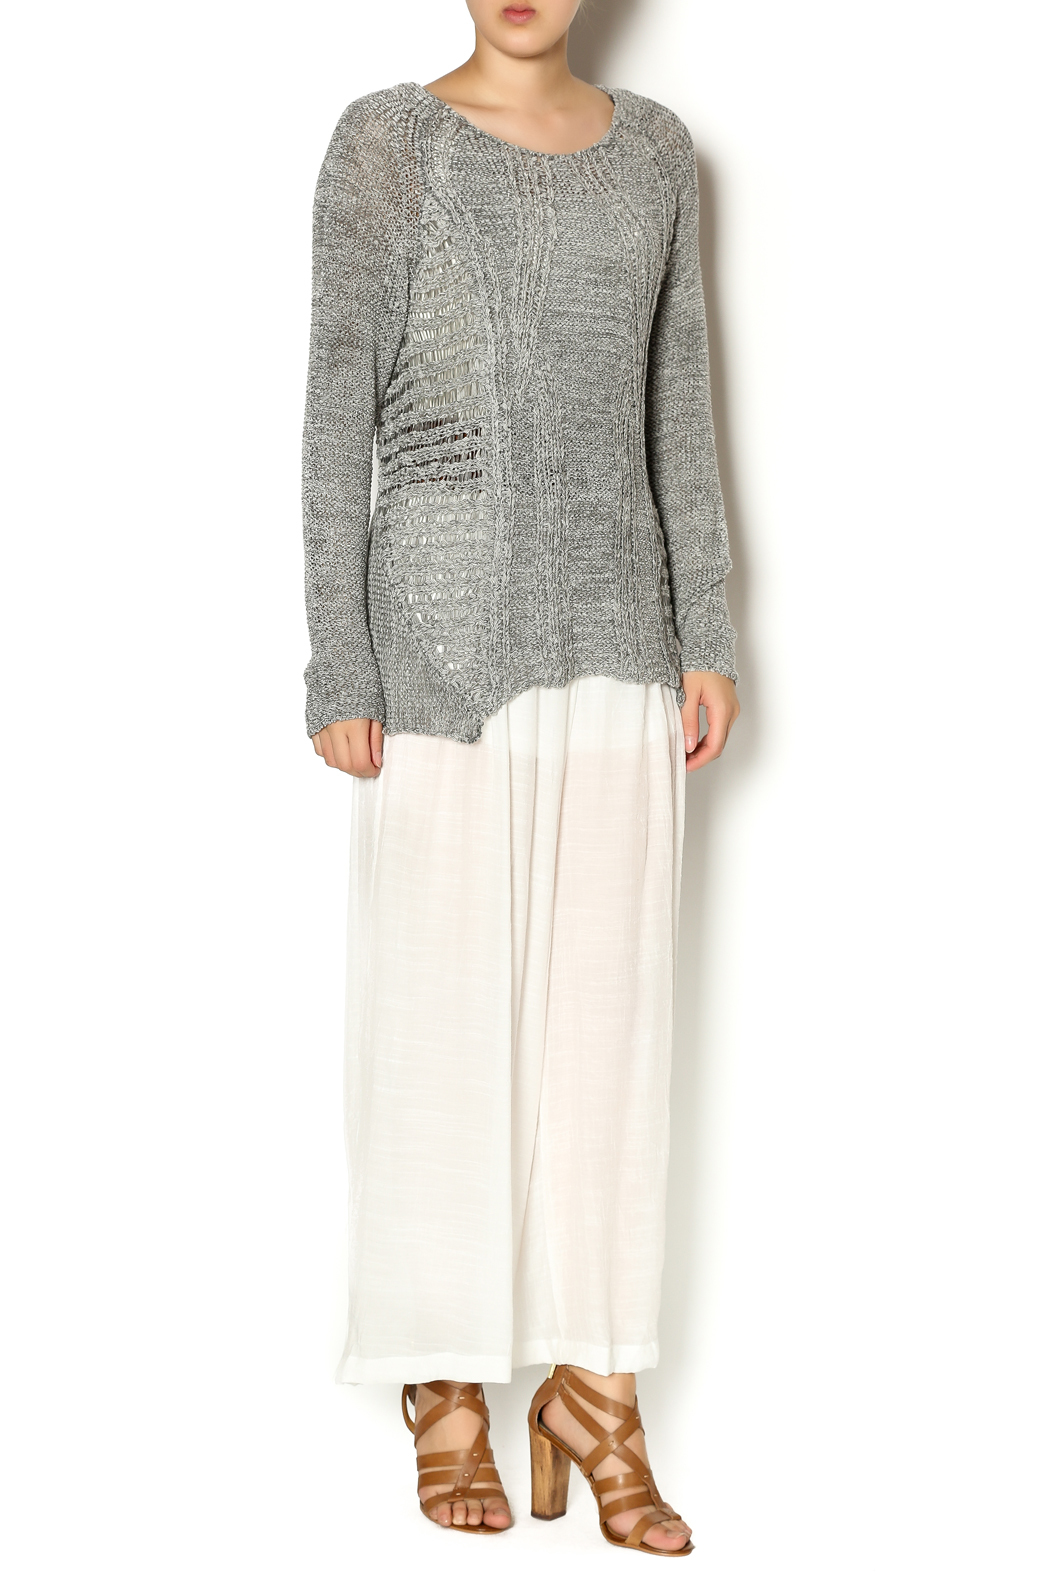 Katherine Barclay Gray Knit Sweater - Front Full Image